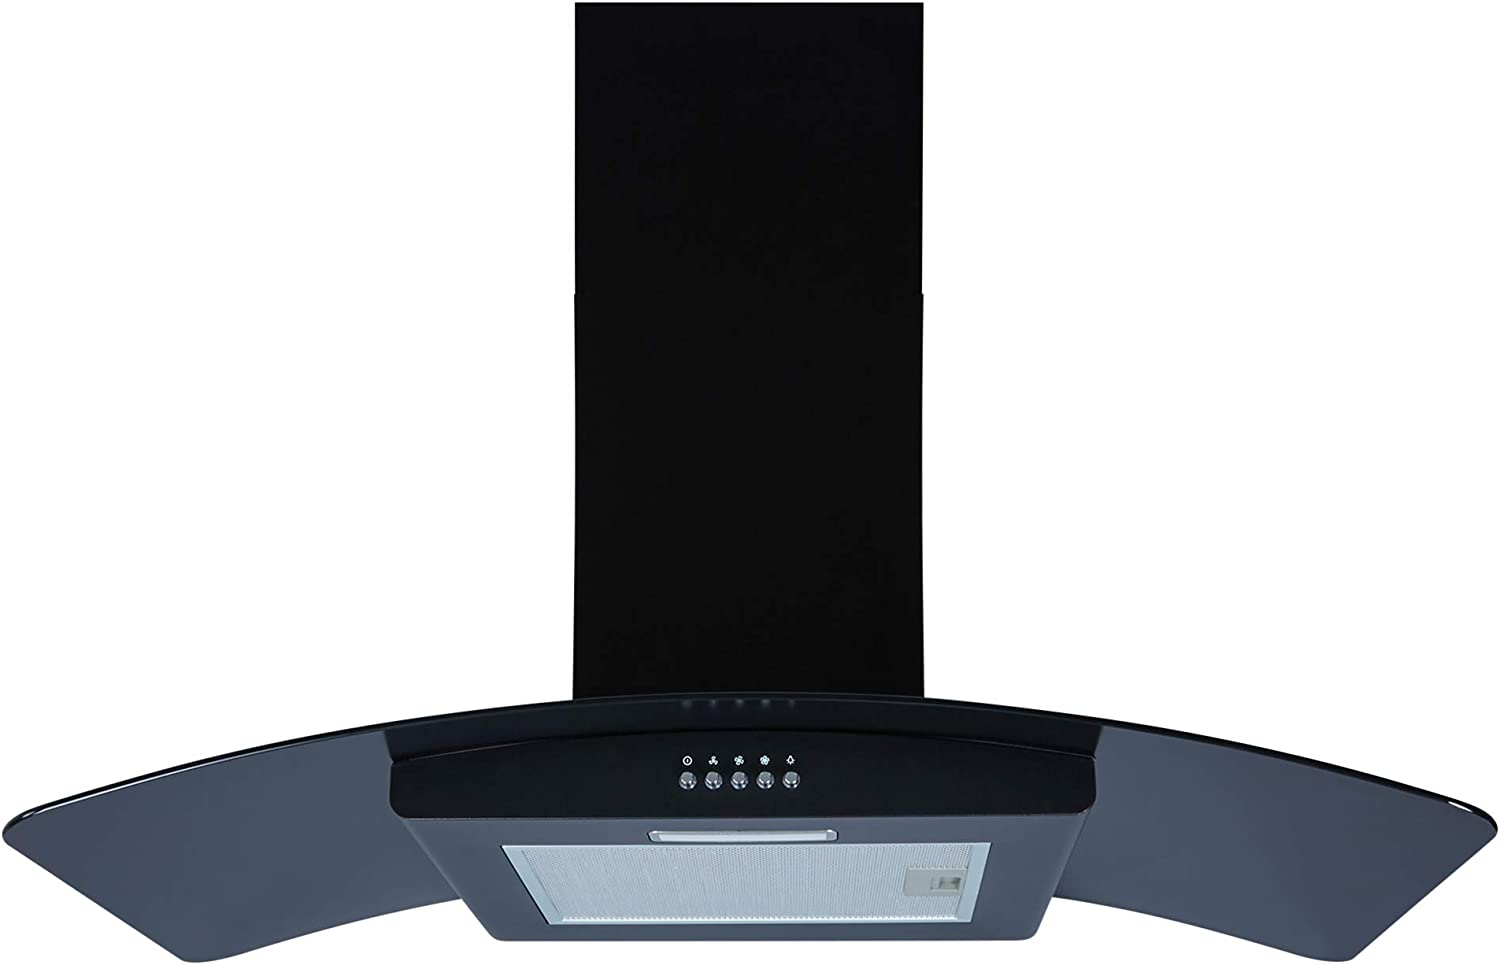 Cookology GHC901BK 90cm Curved Glass Cooker Hood Kitchen Extractor fan Black with Filters